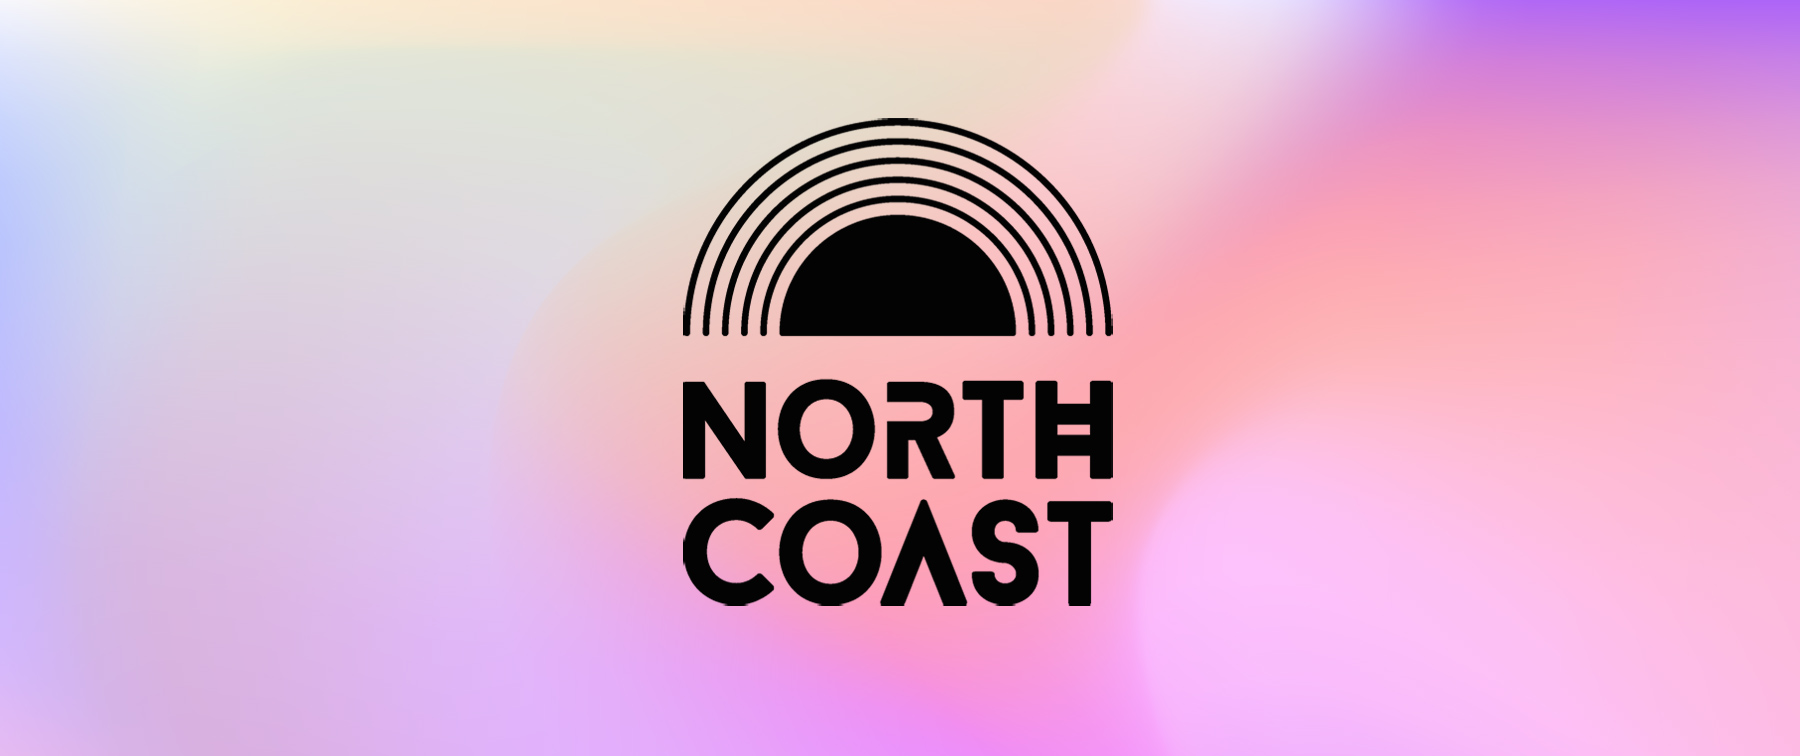 North Coast 2021 Lineup, Dates, New Venue Announced | On Sale Friday, March 26th 2021